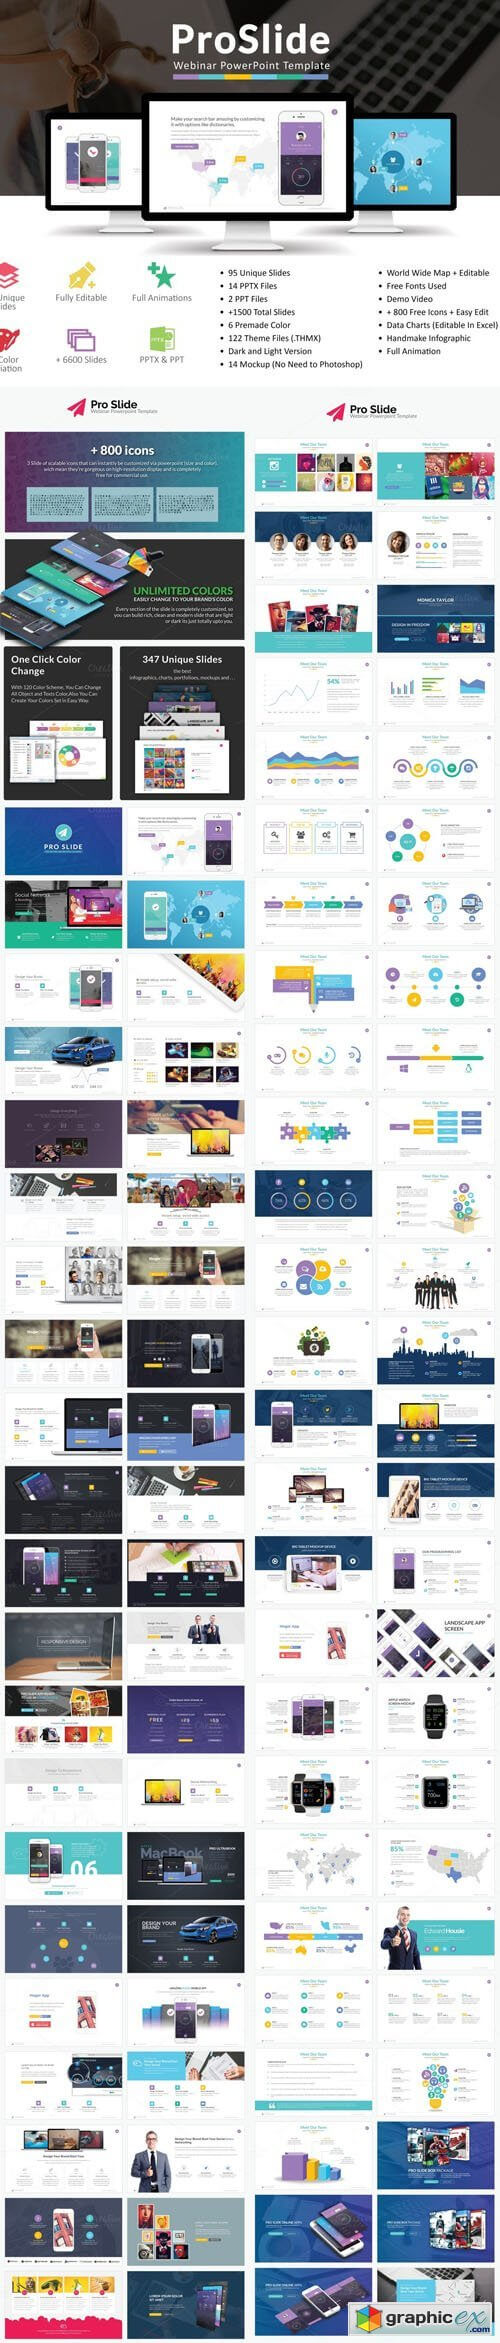 Proslide Webinar Powerpoint Template » Free Download Vector Inside Webinar Powerpoint Templates